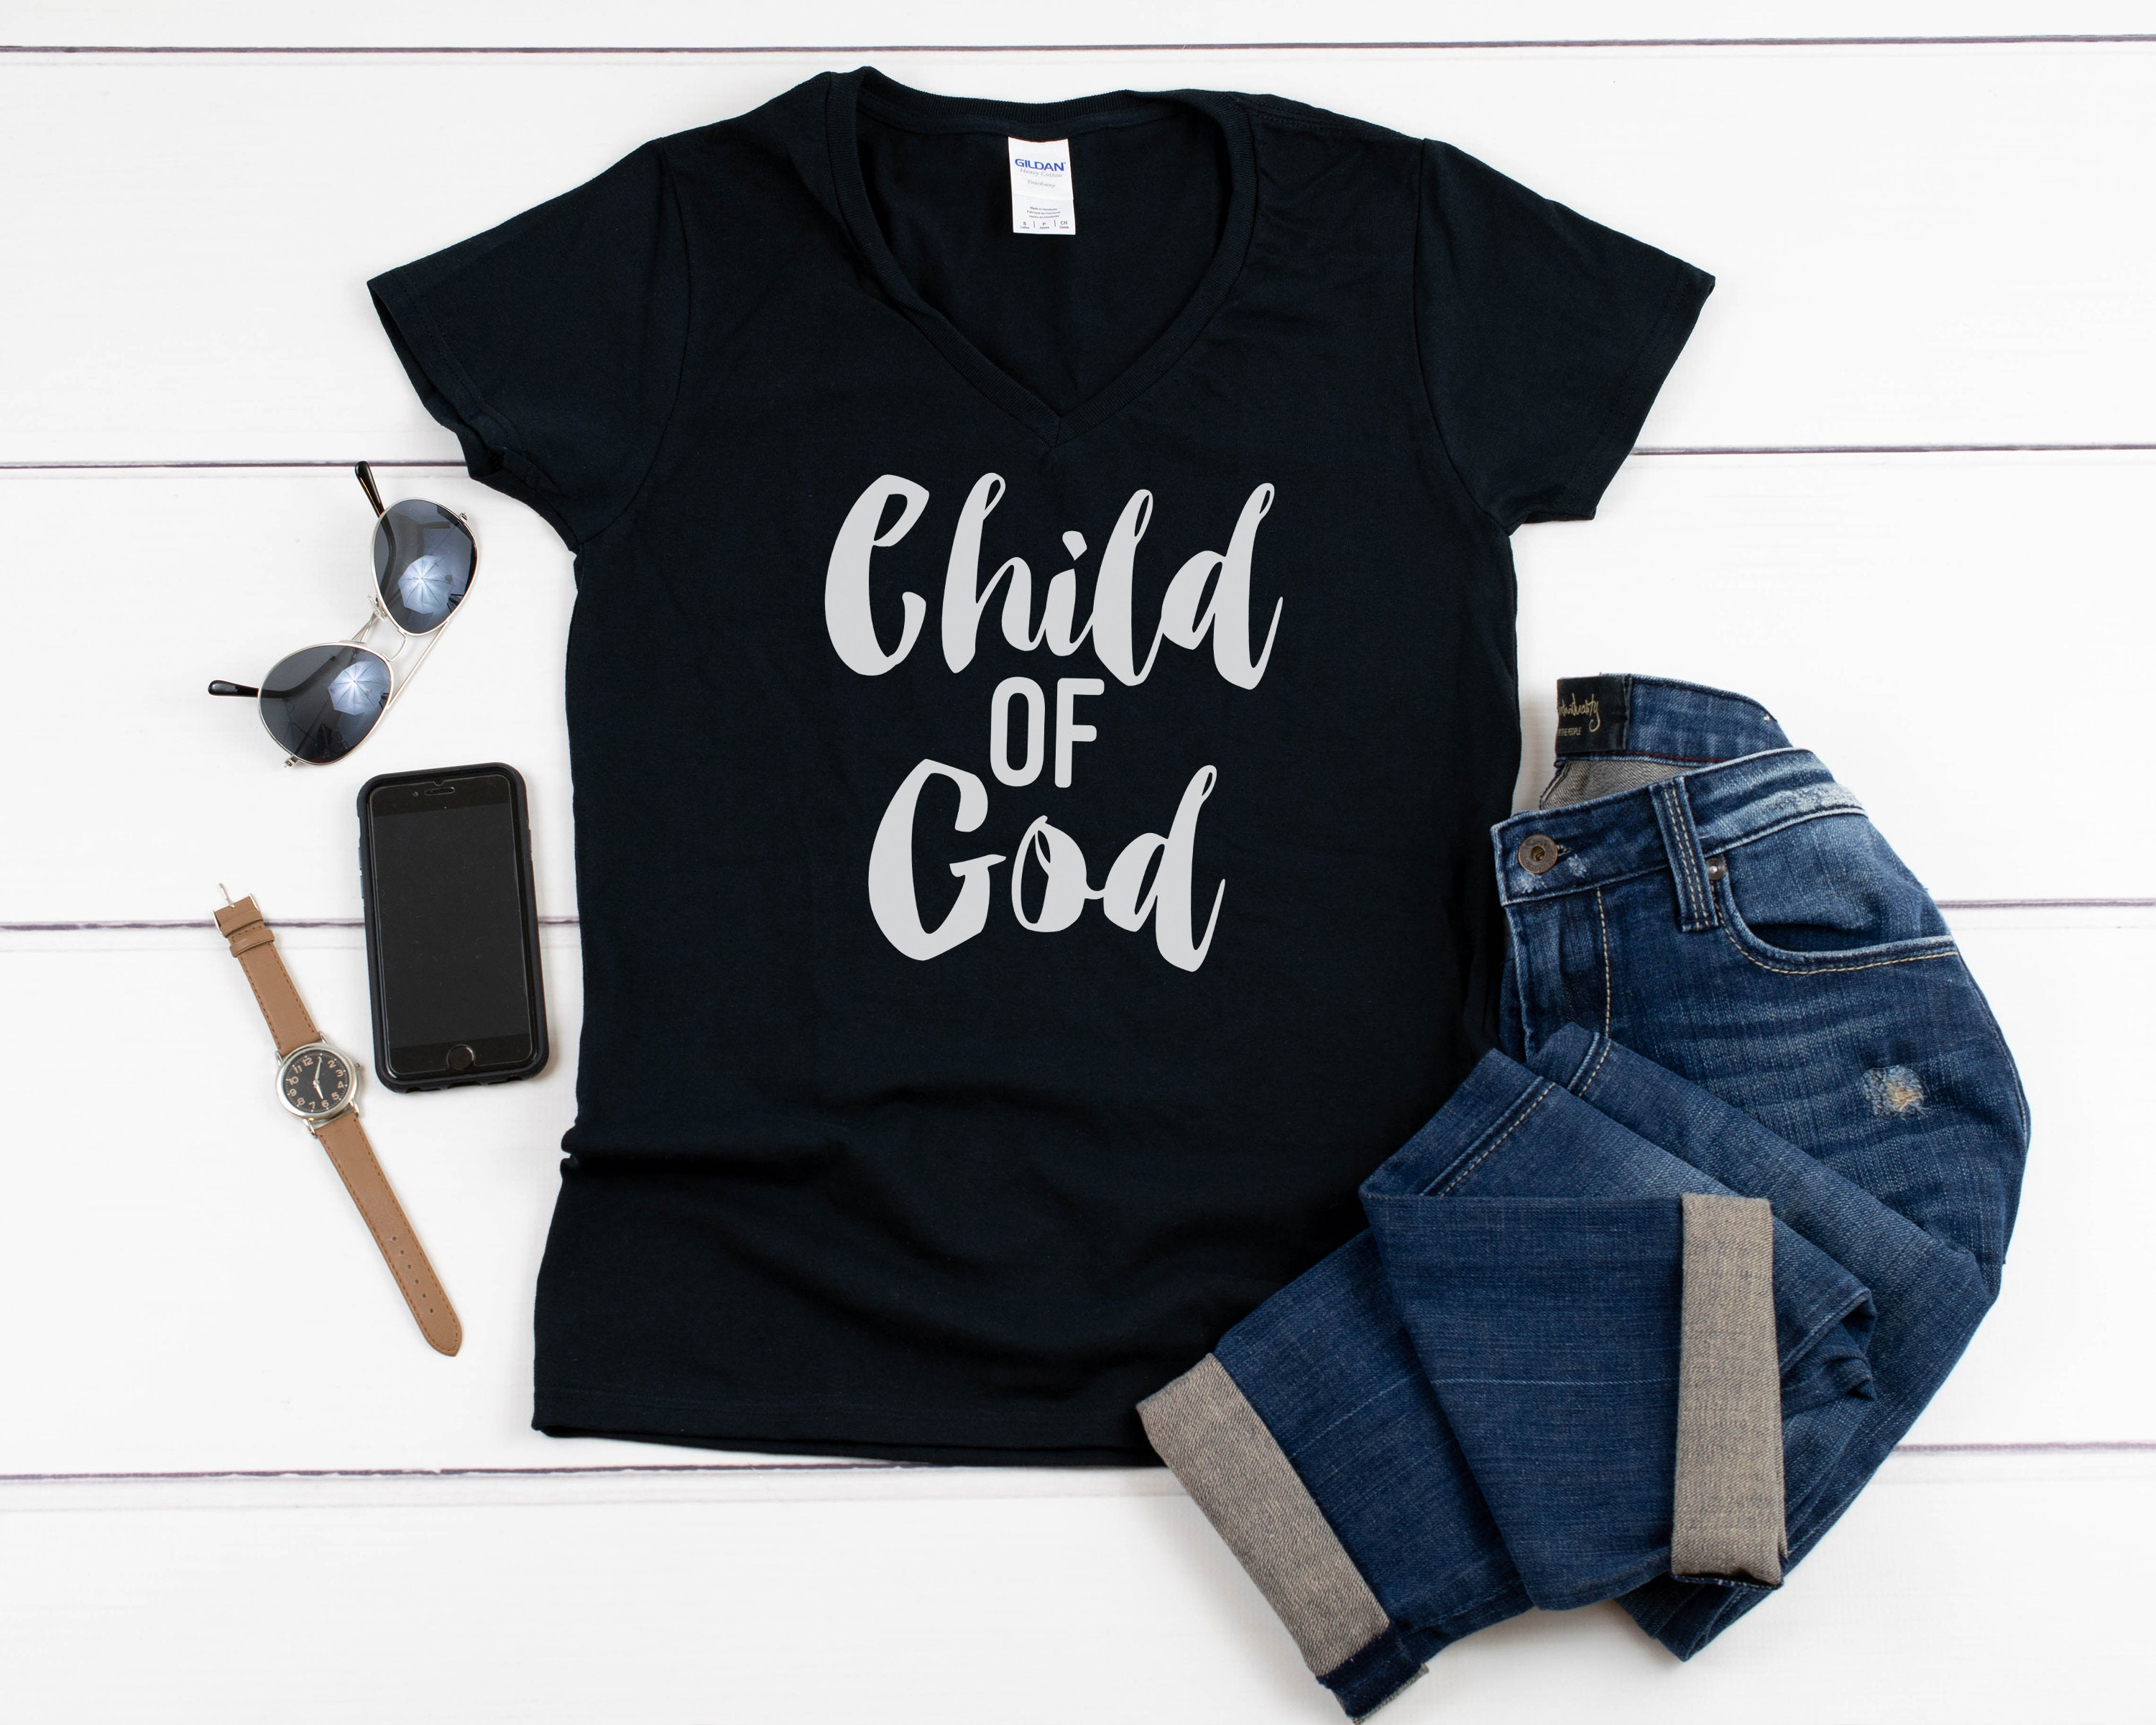 d5f126458 ... Child of God Shirt, Christian Easter Gift, Faith Based T-Shirt, Bible, Easter  Tee, Christian Holiday Tee, Easter Outfits. gallery photo ...